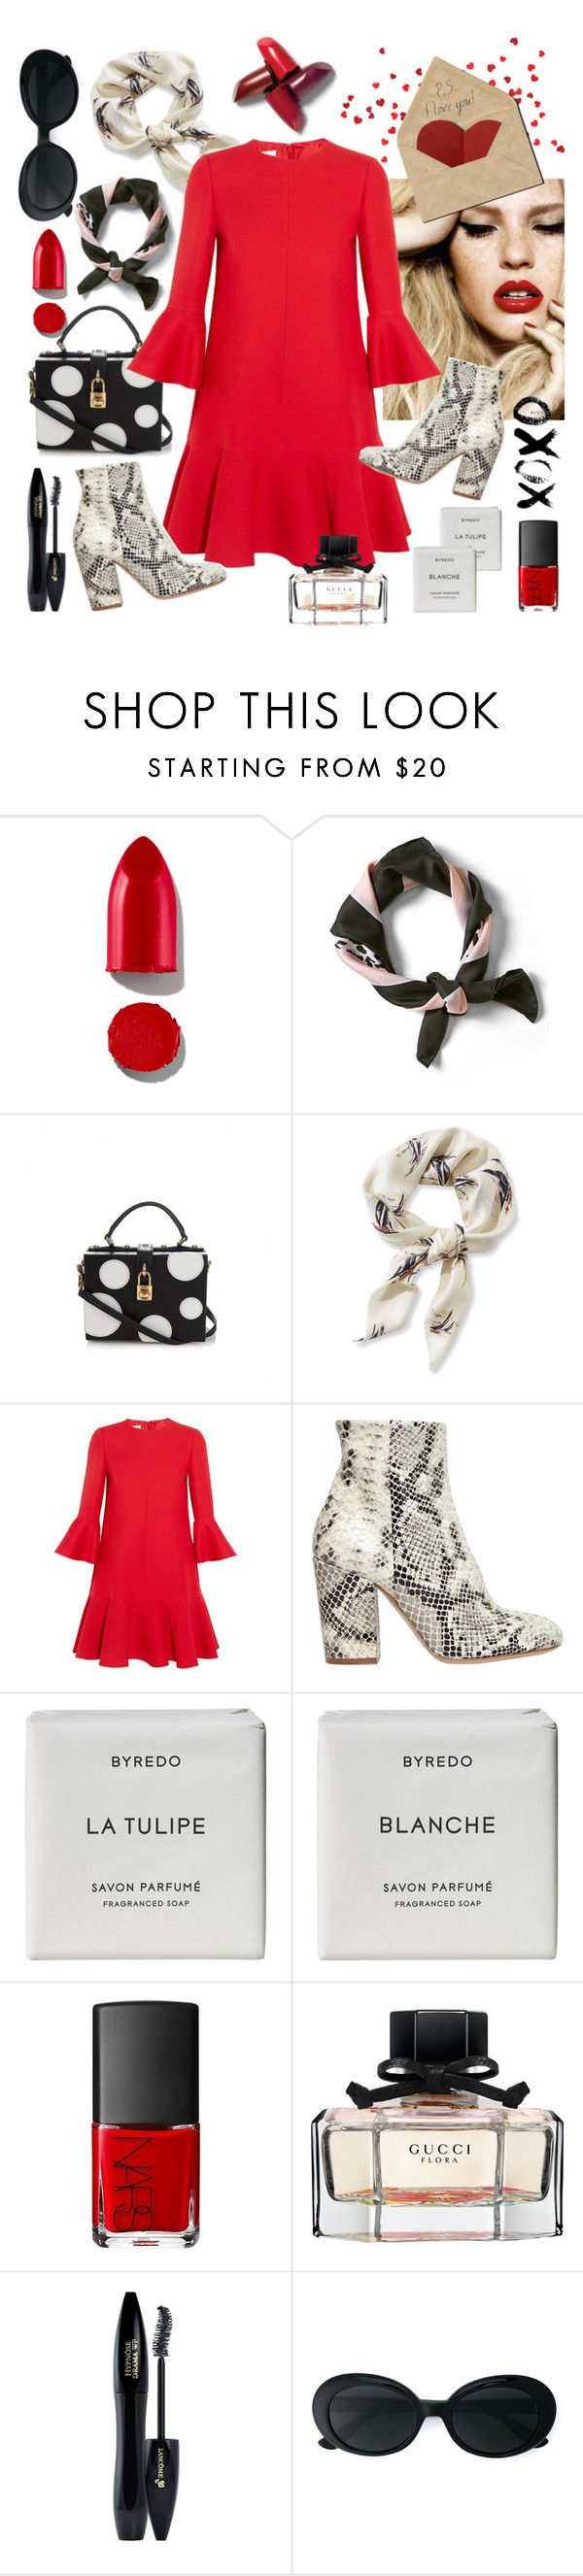 """""""Heart you very much"""" by sophier on Polyvore featuring Rodin, Banana Republic, Dolce&Gabbana, L.L.Bean, Valentino, Strategia, Byredo, Gucci, Lancôme and Yves Saint Laurent"""